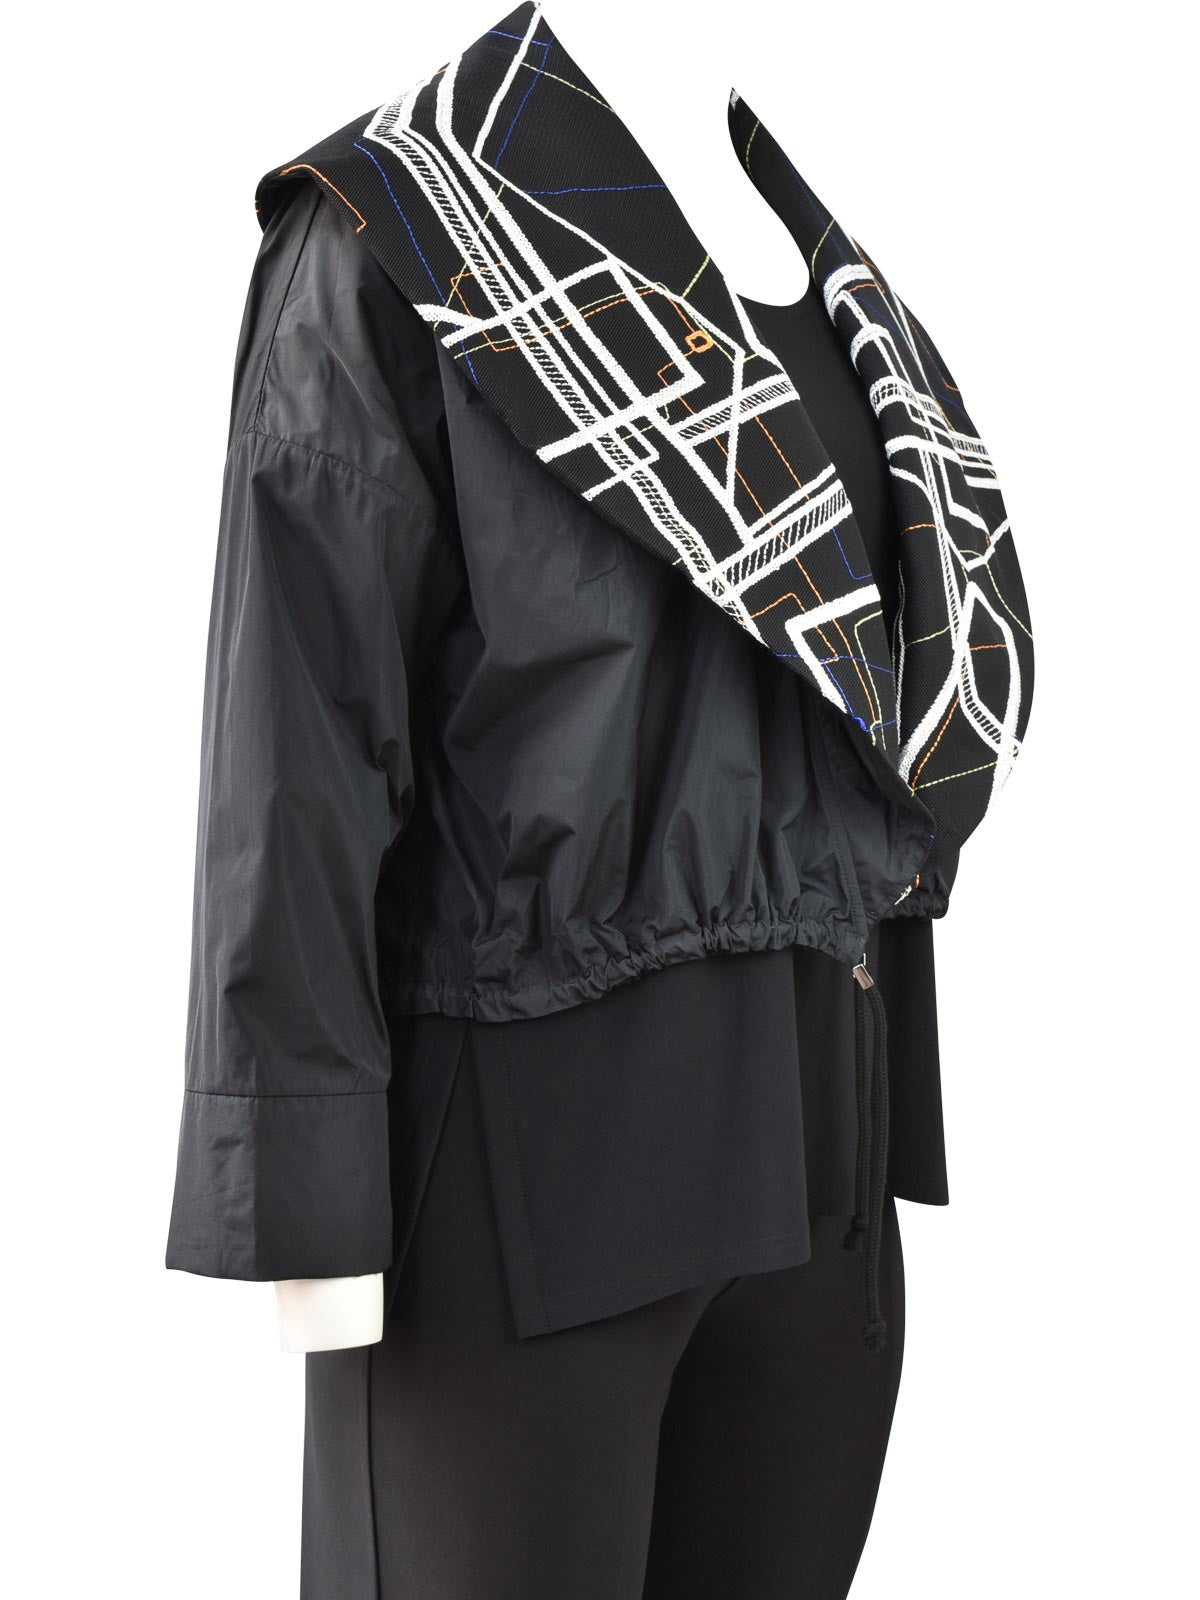 NY77 Embroidered Collar Short Jacket, Black/Multi